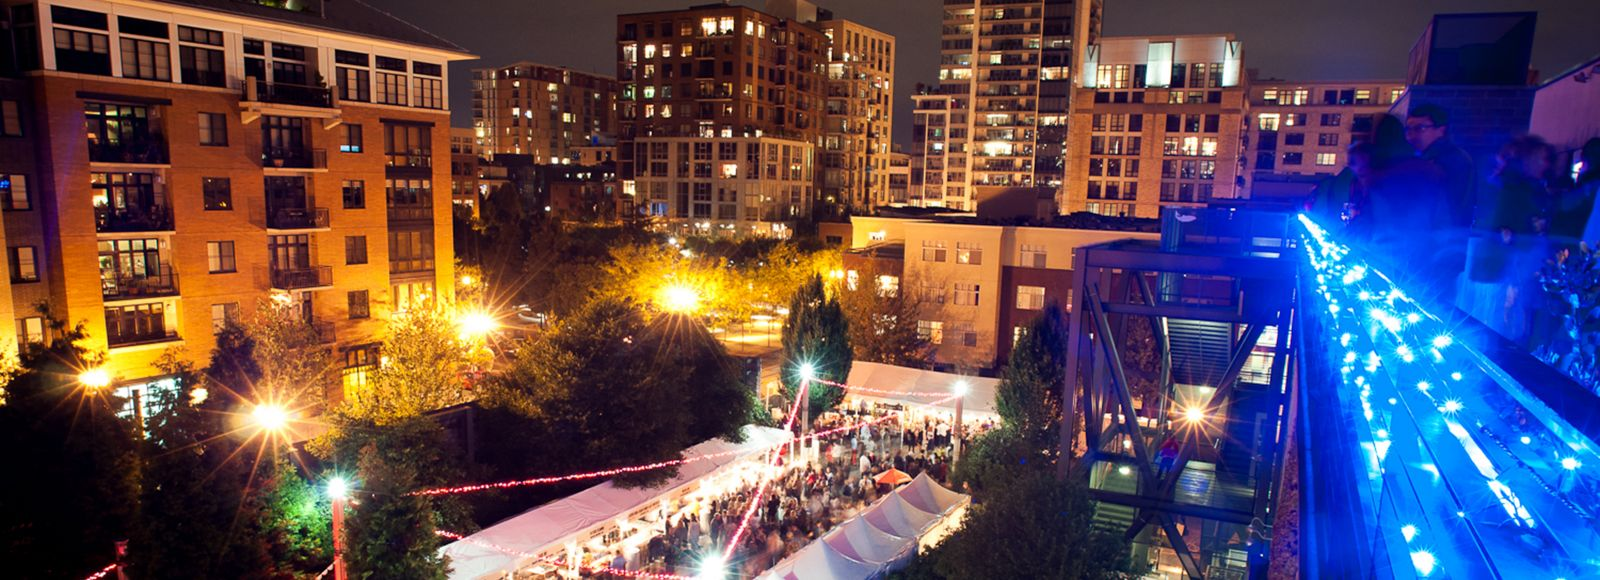 aerial shot of nighttime outdoor celebration with white tents set up, lights strung from above, and crowds of people